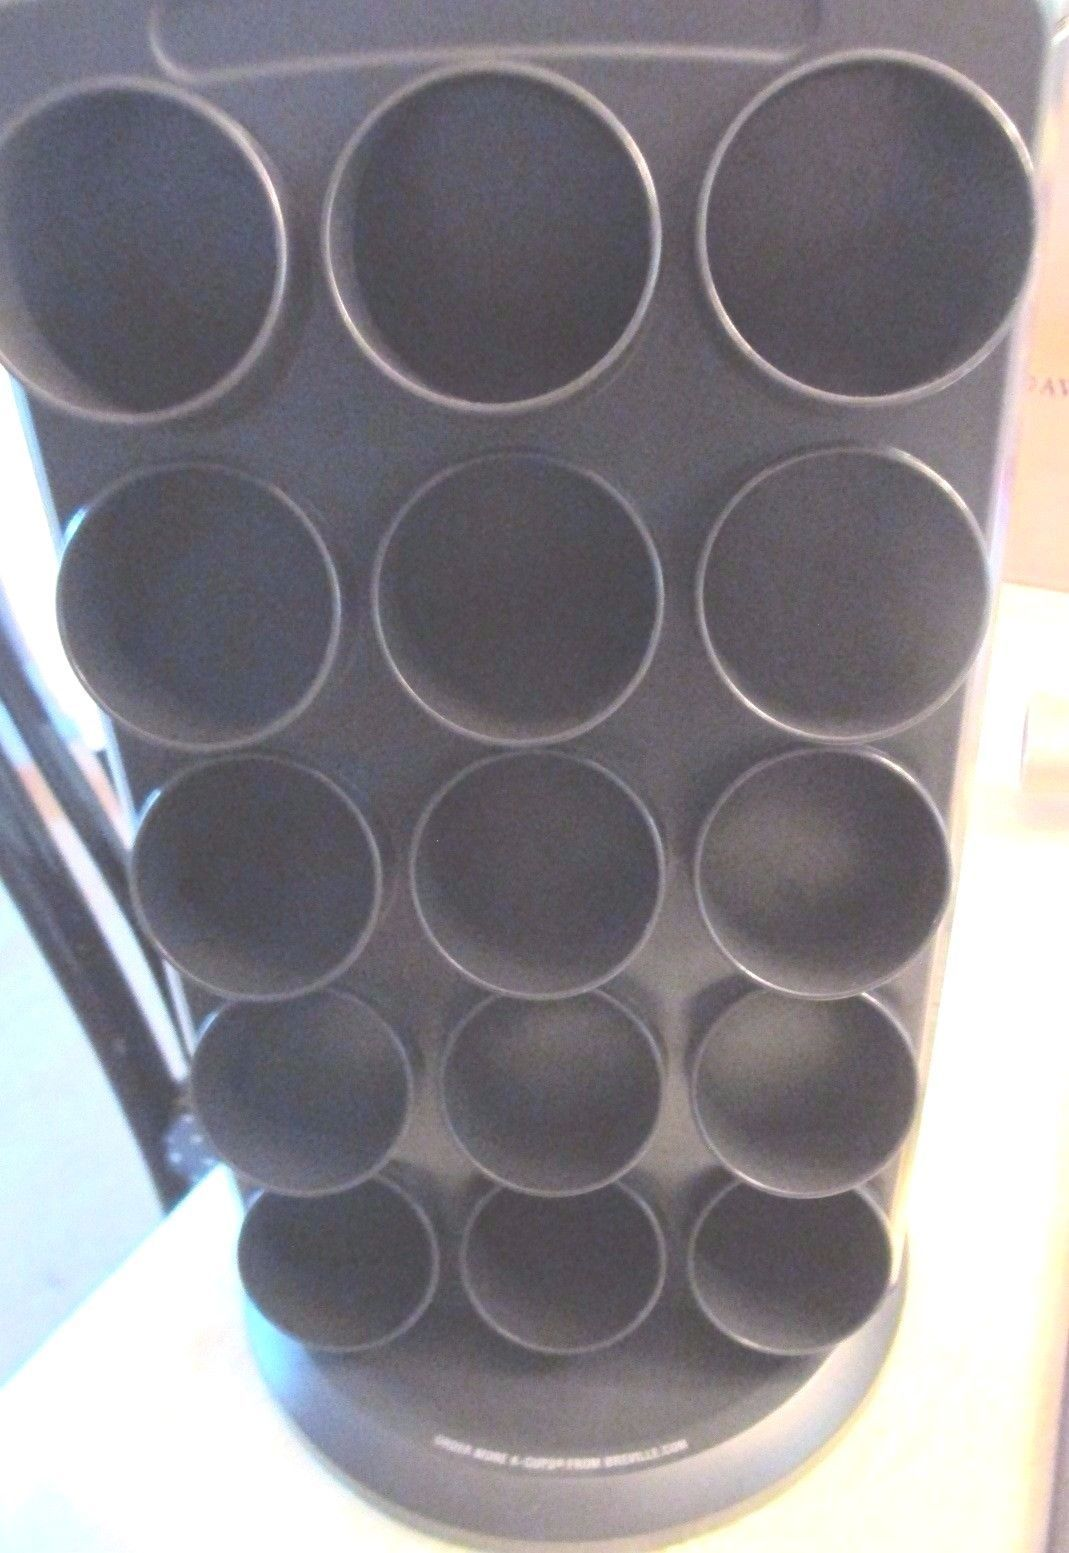 Breville Spinning Coffee Pod & KCup Holder Organizer in